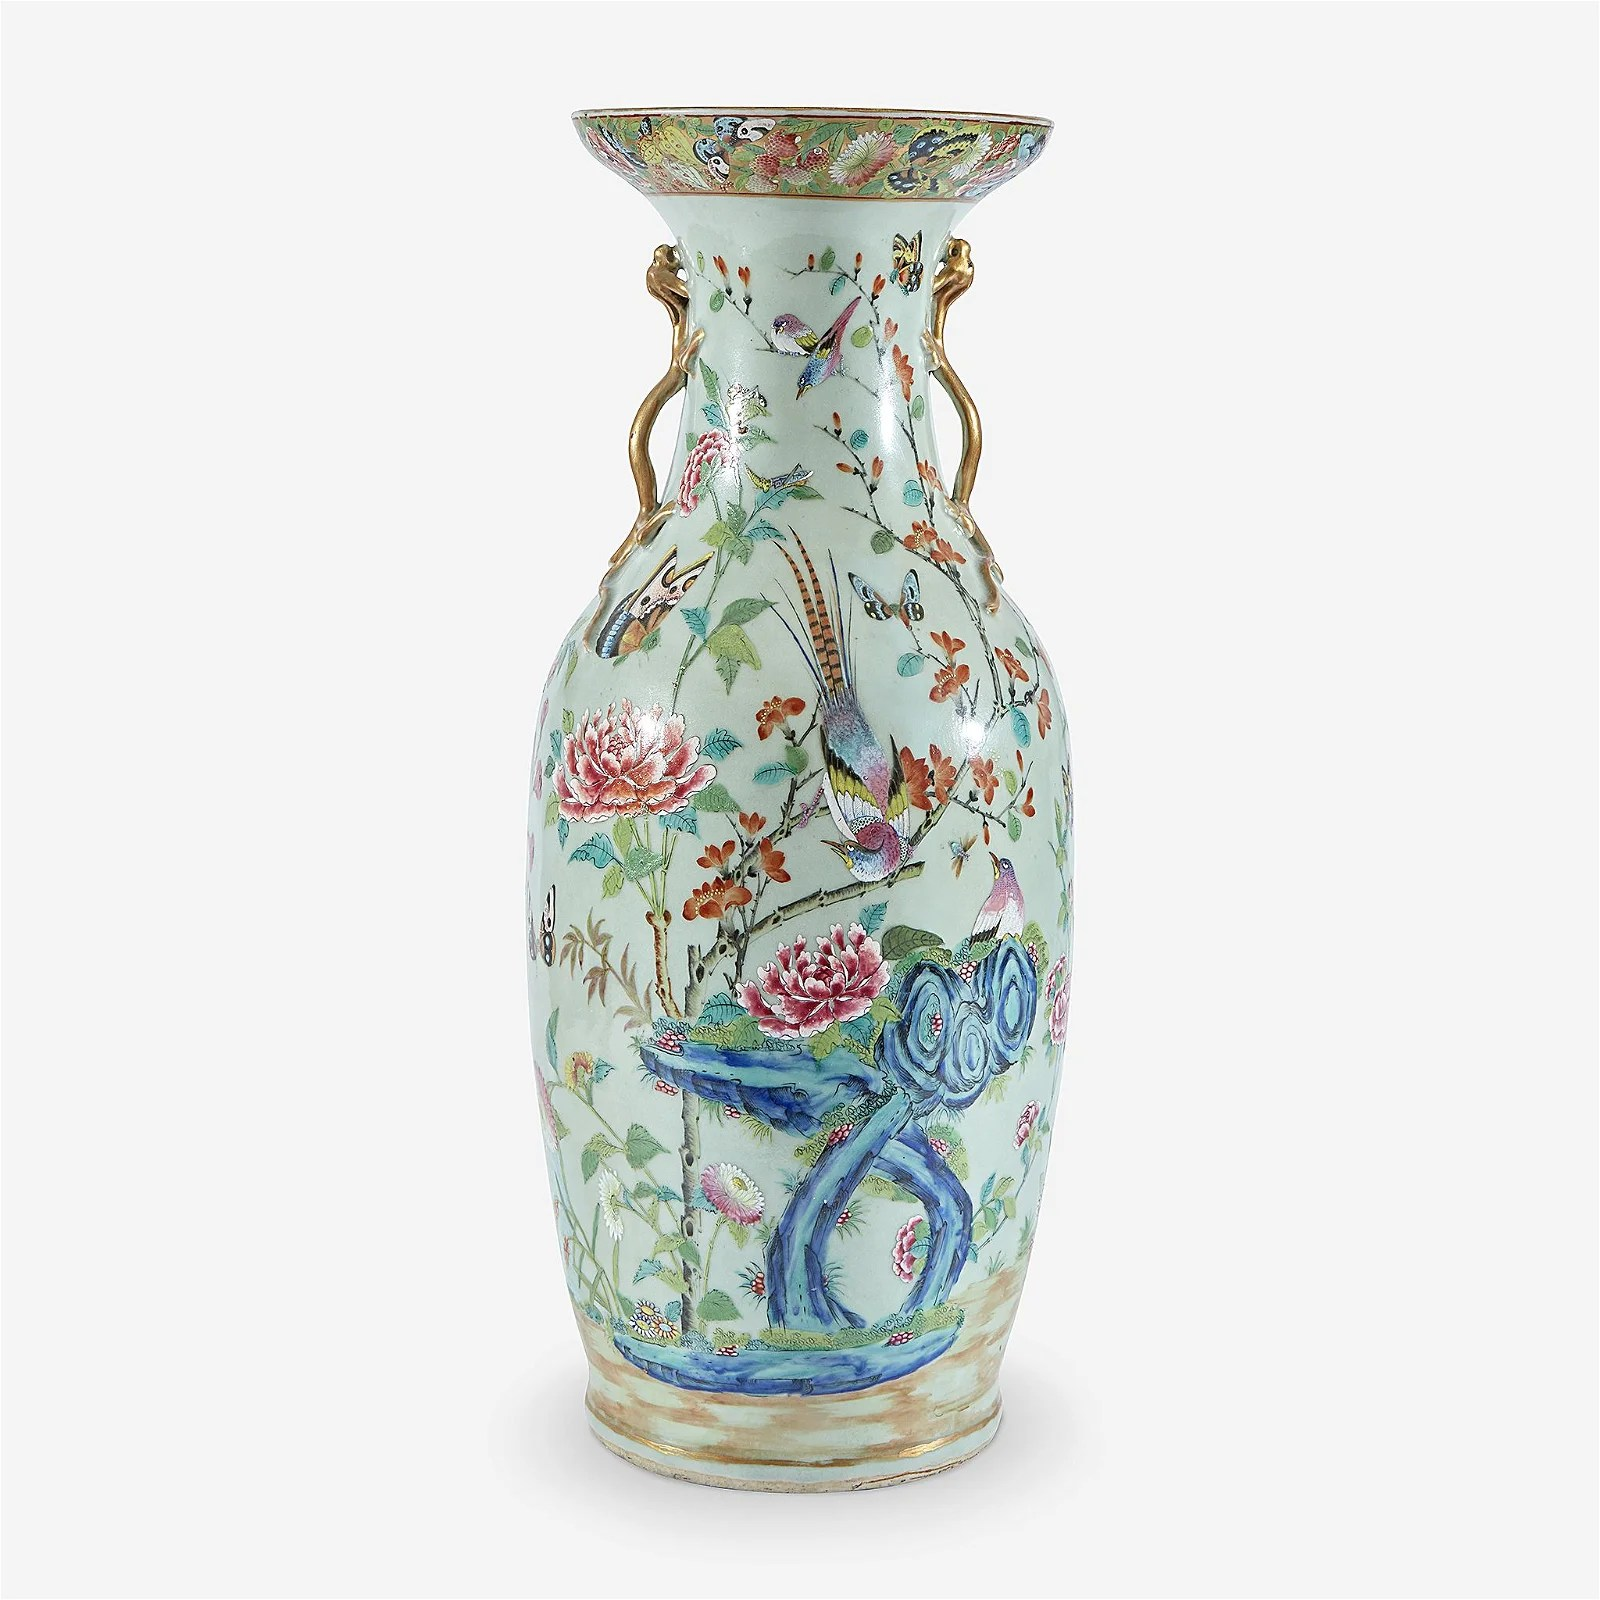 A large Chinese export famile rose-decorated porcelain